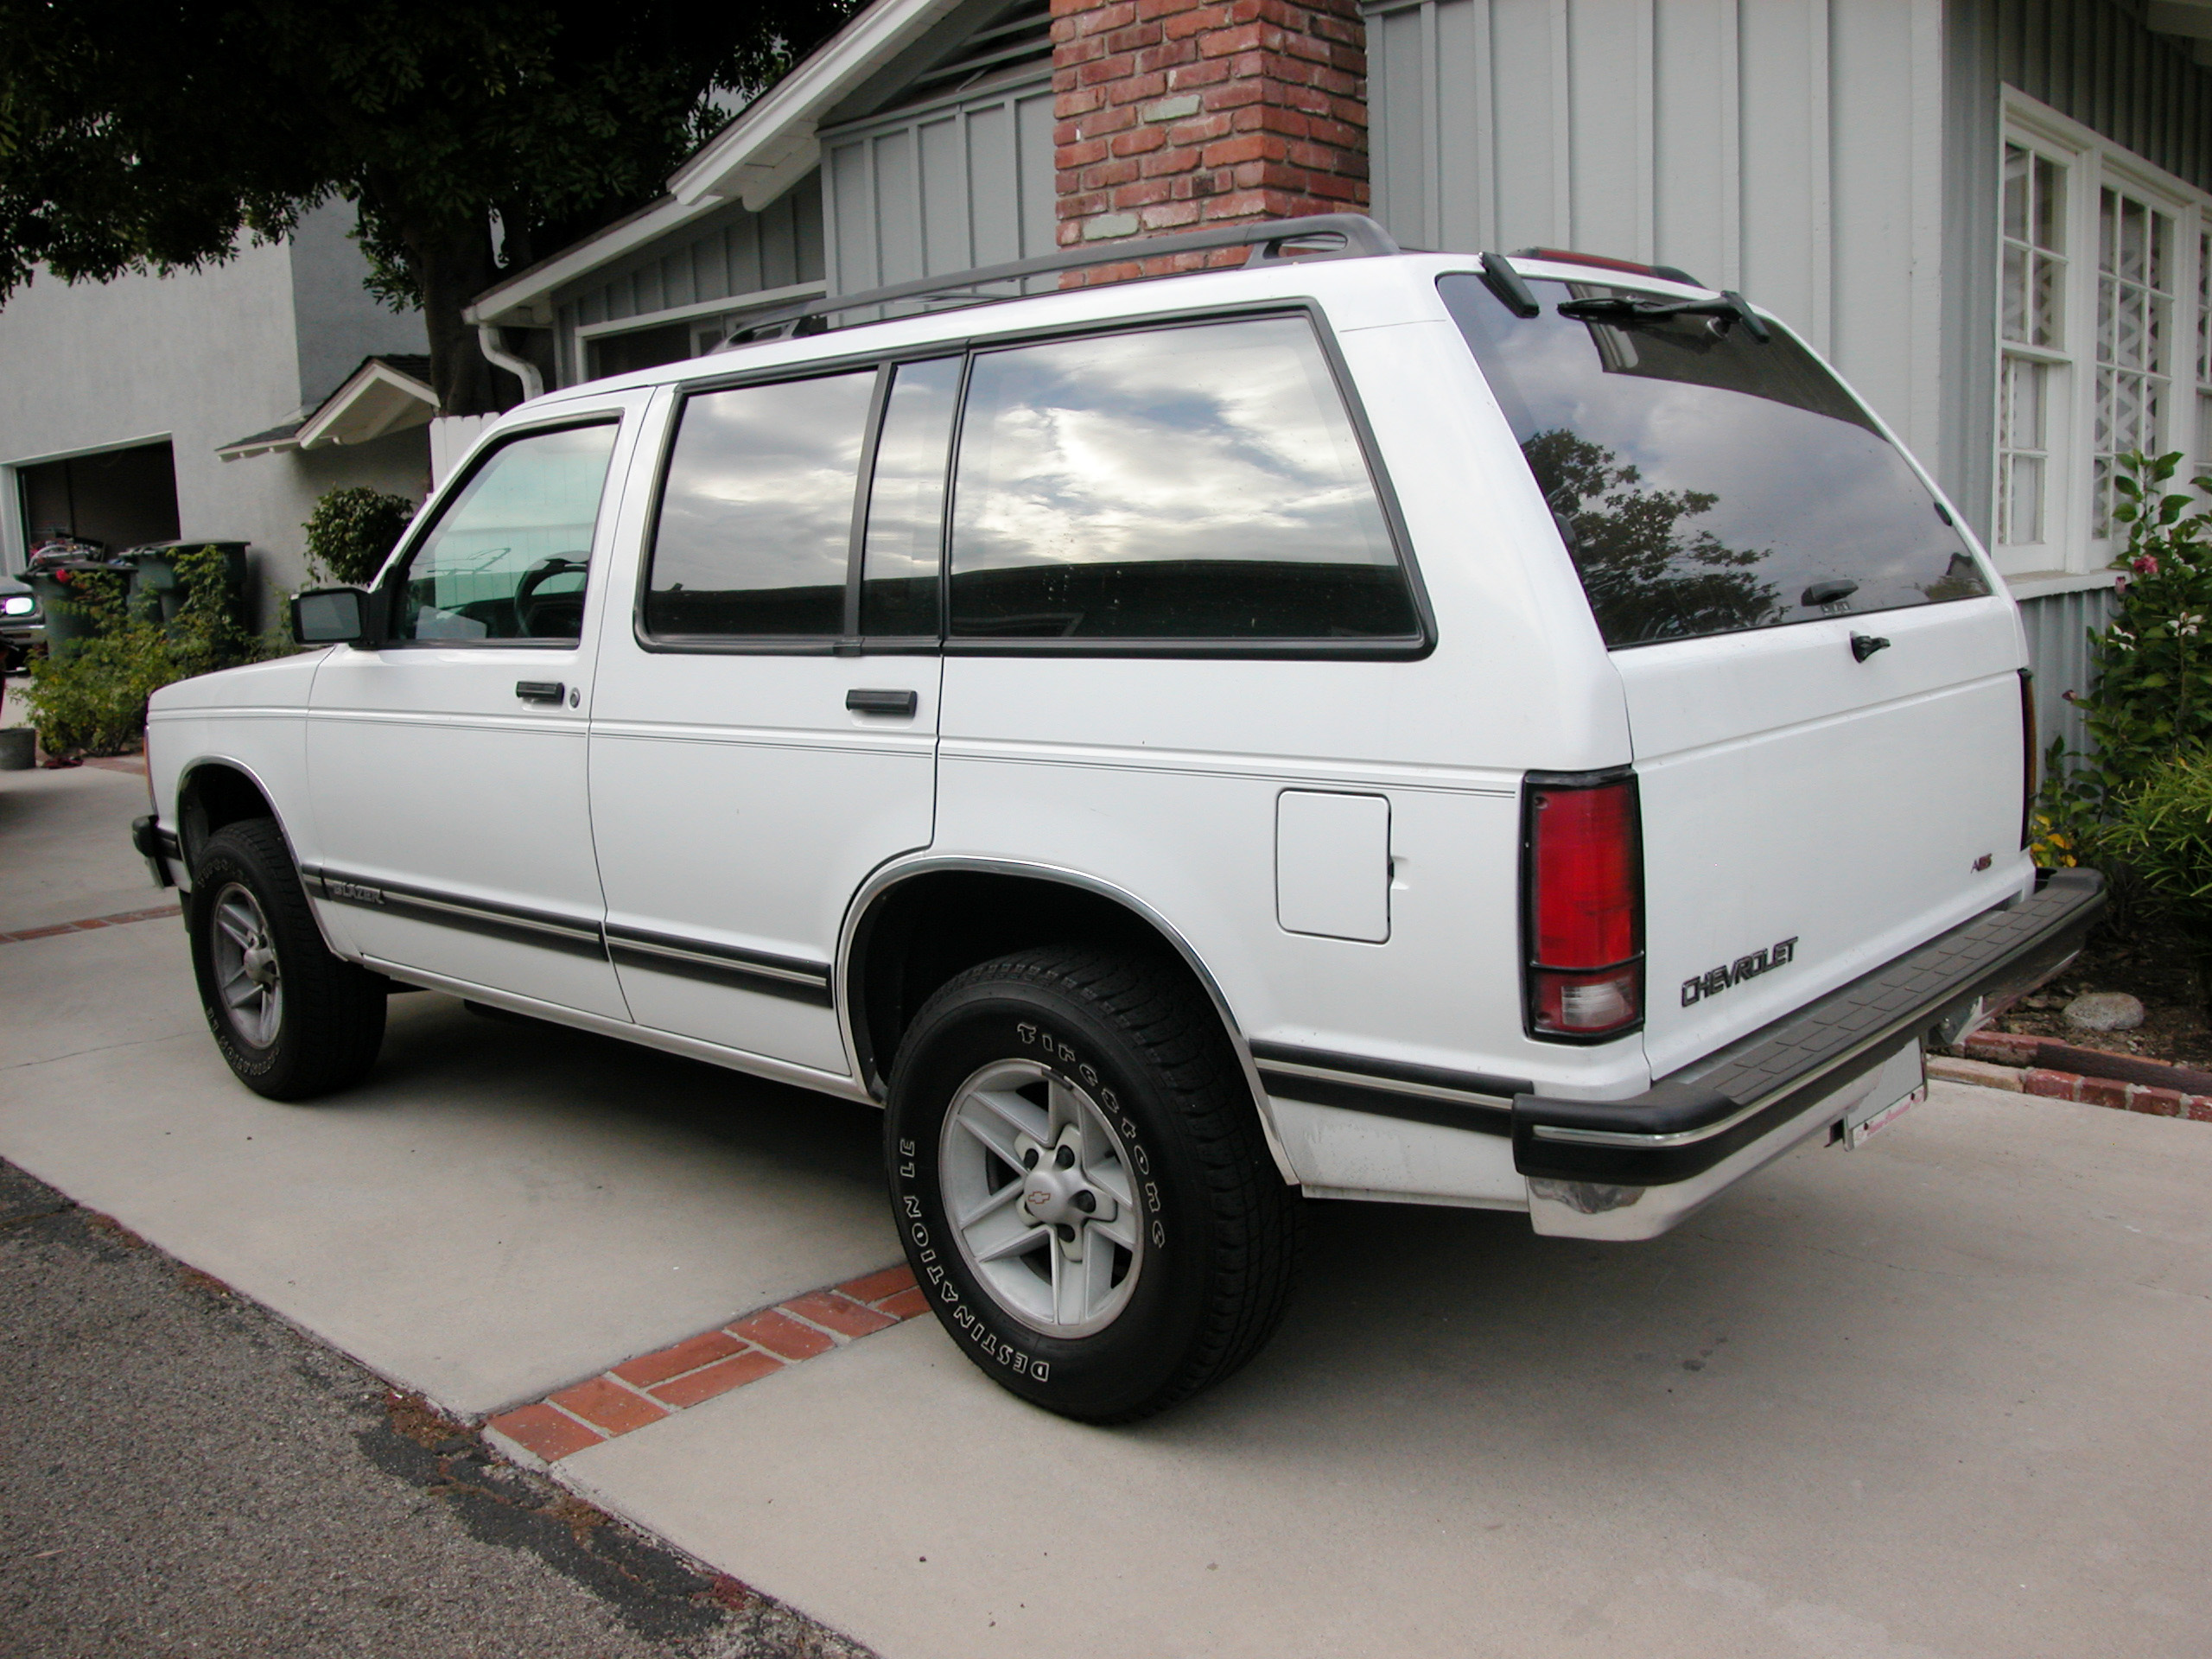 1991 Chevrolet S 10 Blazer Information And Photos Zombiedrive 1500 Wiring Diagram Free Download 1